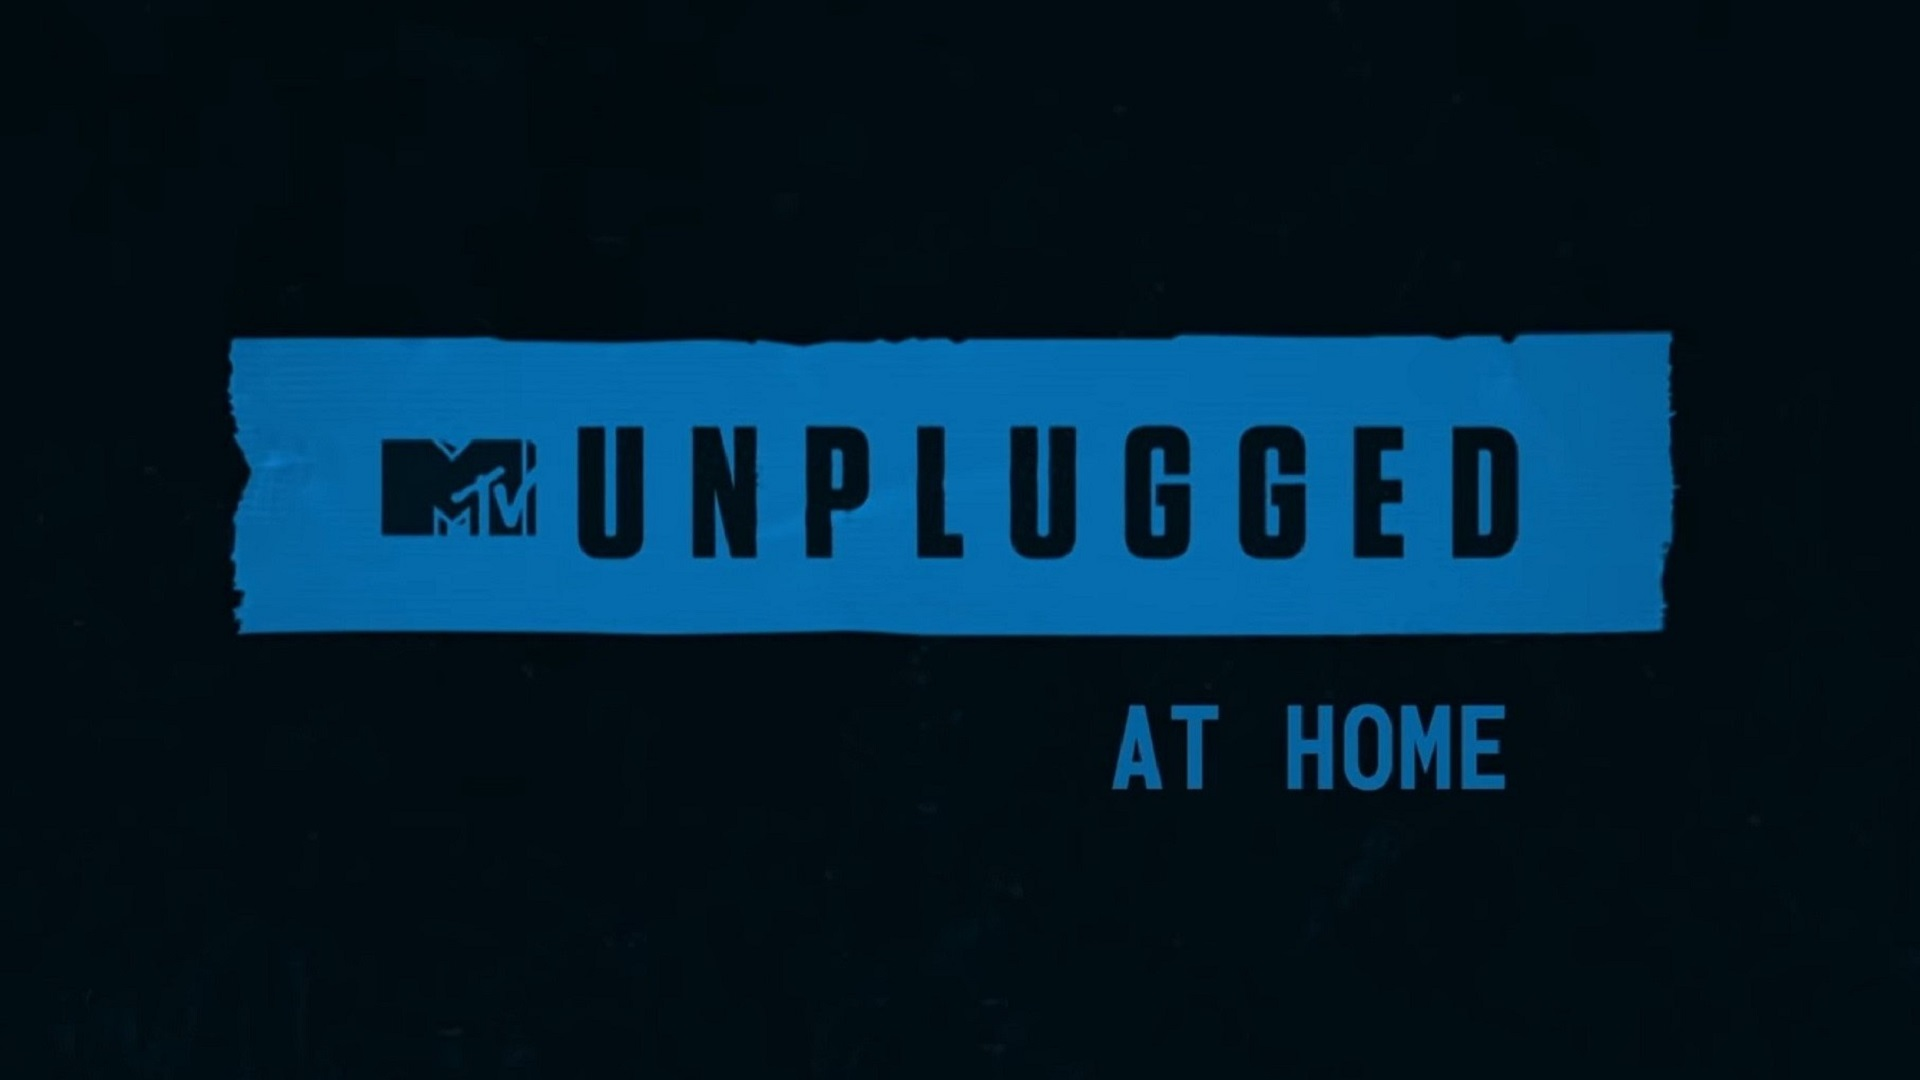 Unplugged at home